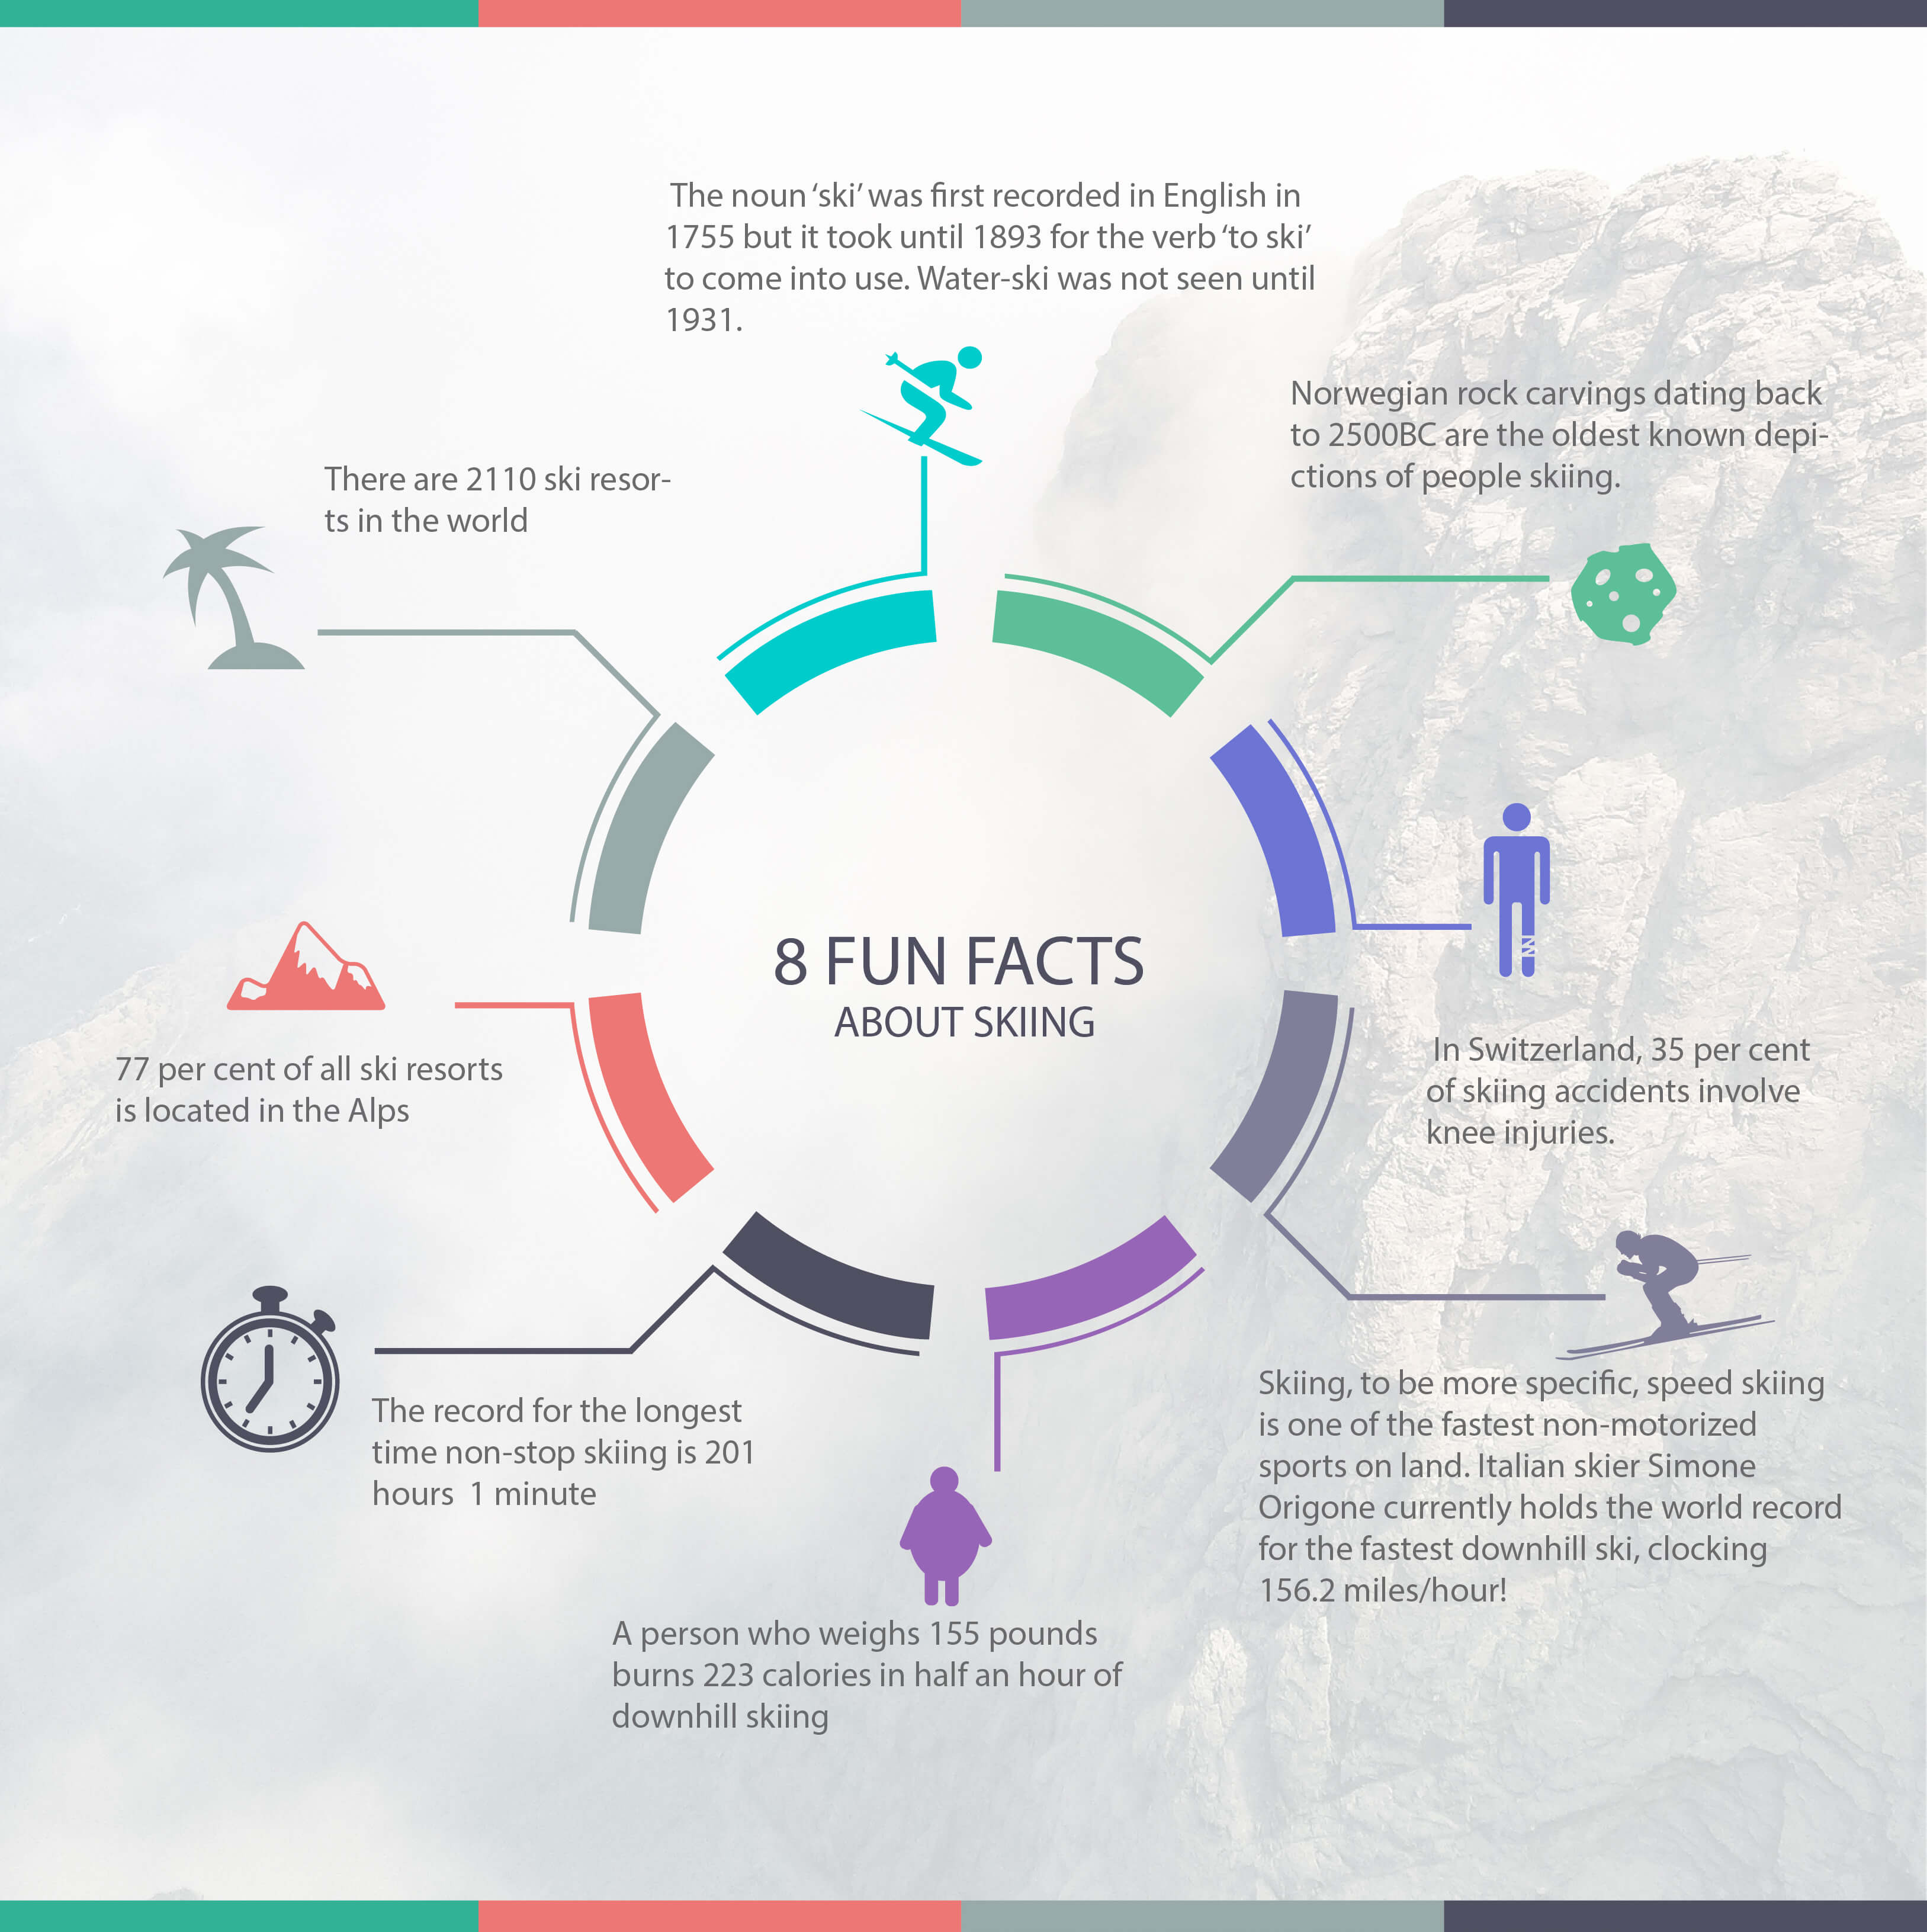 8 Facts about skiing